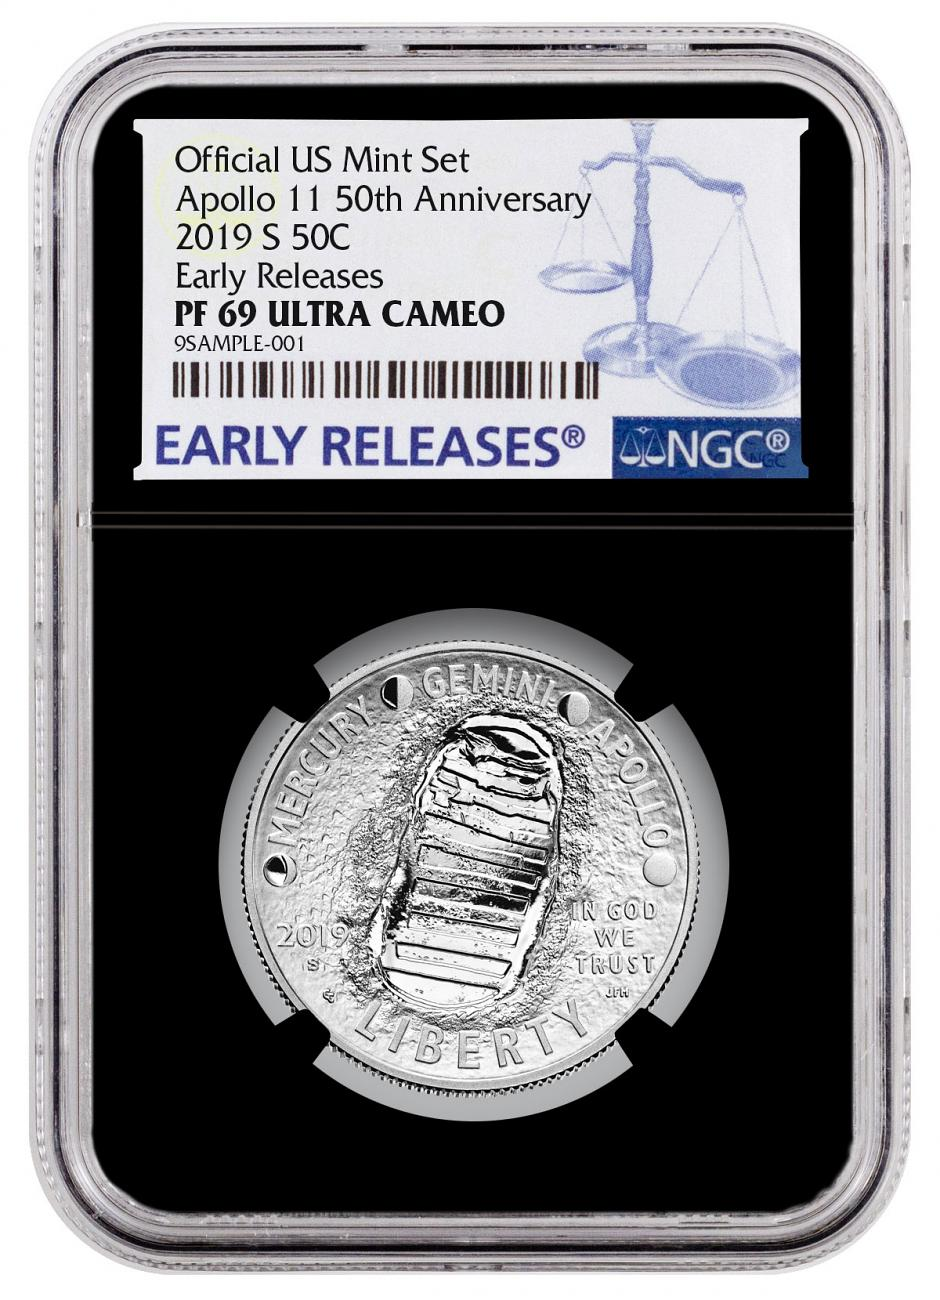 2019-S US Apollo 11 50th Anniversary Commemorative Clad Half Dollar Proof Coin From Apollo 11 Half Dollar Set NGC PF69 ER Black Core Holder